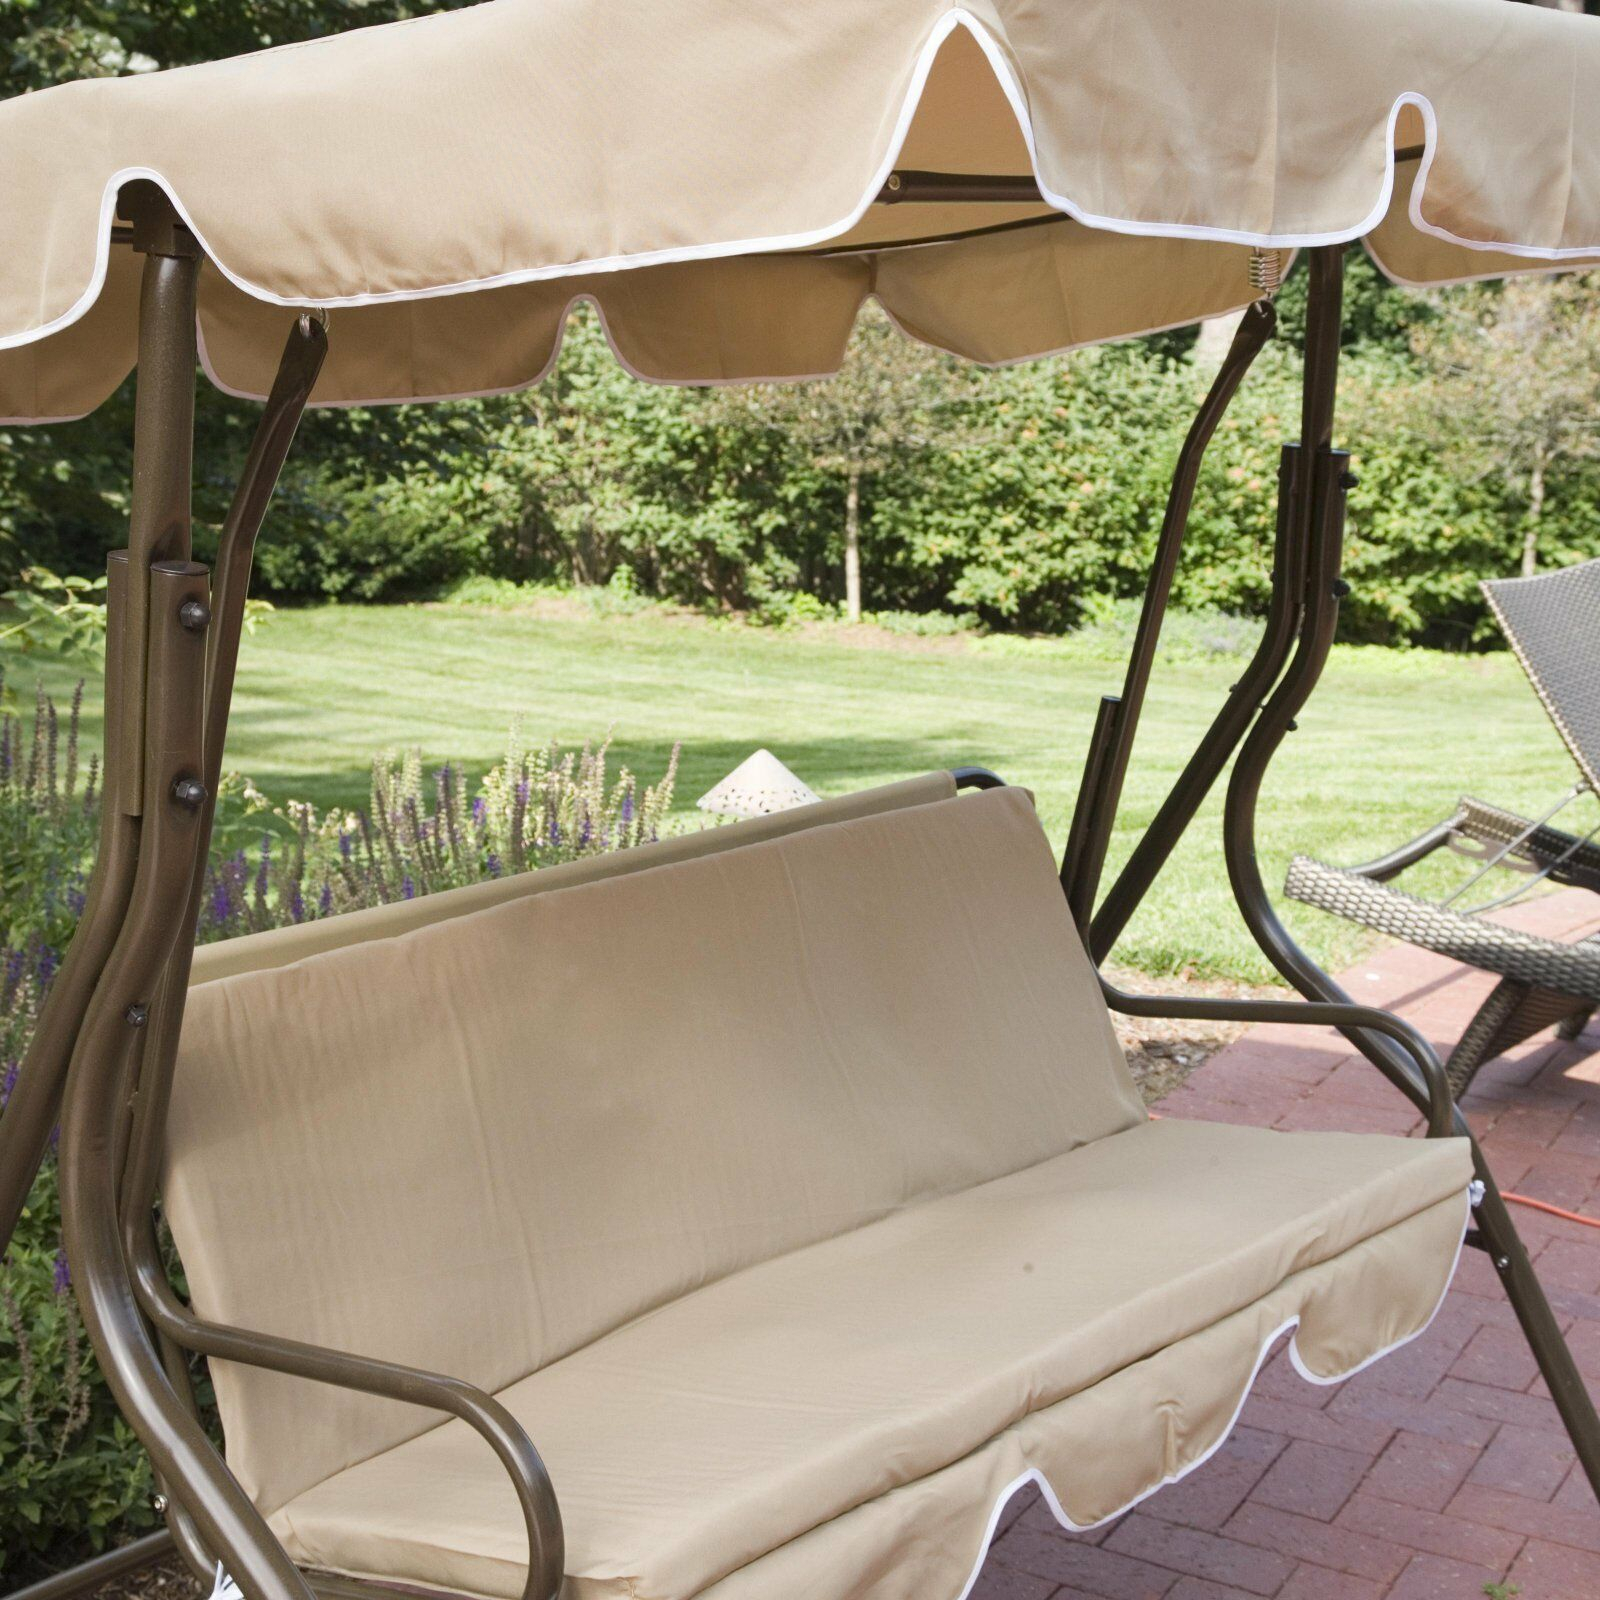 Patio Swing With Canopy Outdoor Adjustable 2 Person Tilt Porch Swings Metal Within 2 Person Adjustable Tilt Canopy Patio Loveseat Porch Swings (View 6 of 25)